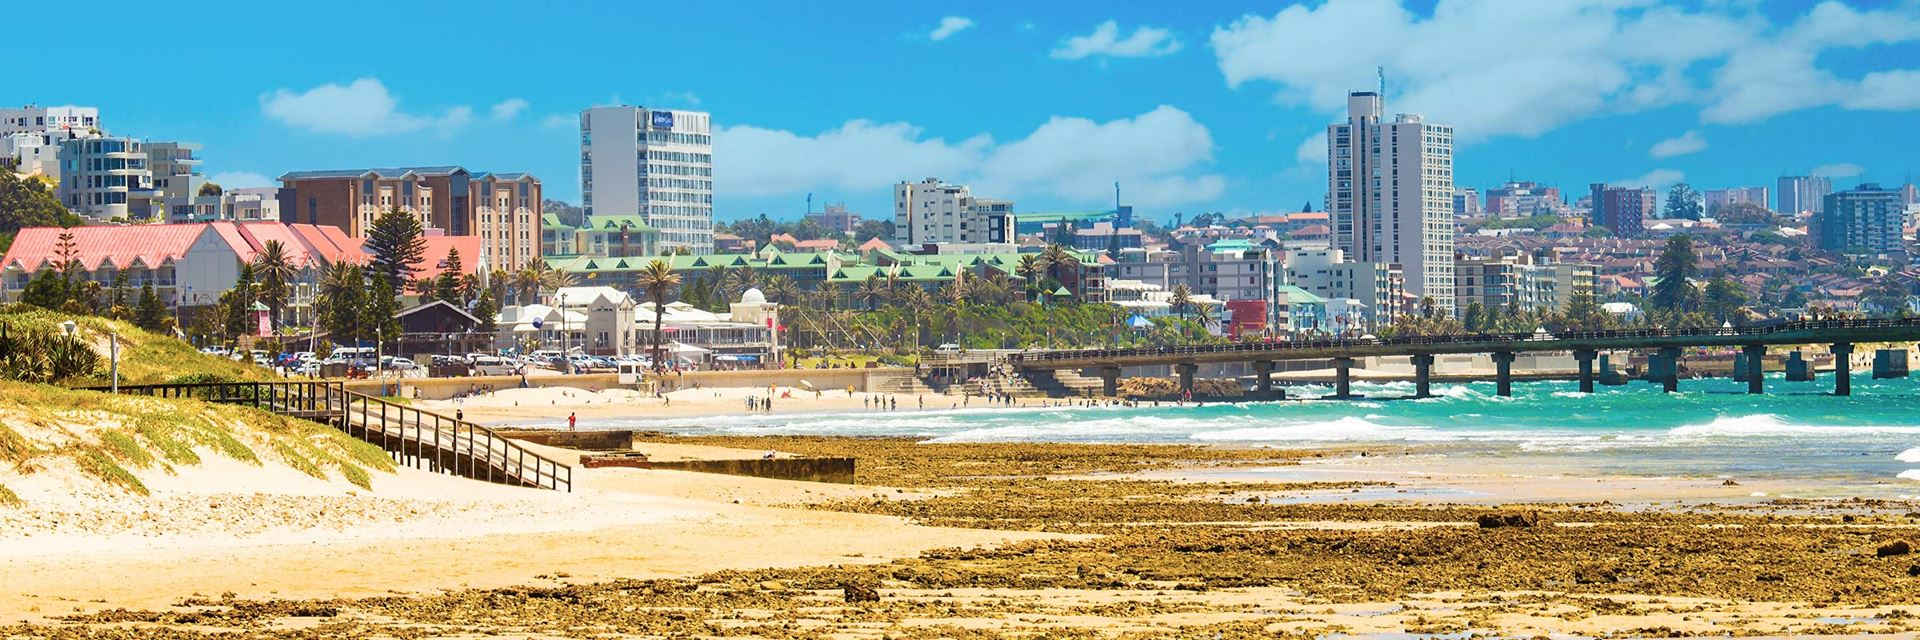 Things You Should Do In Port Elizabeth